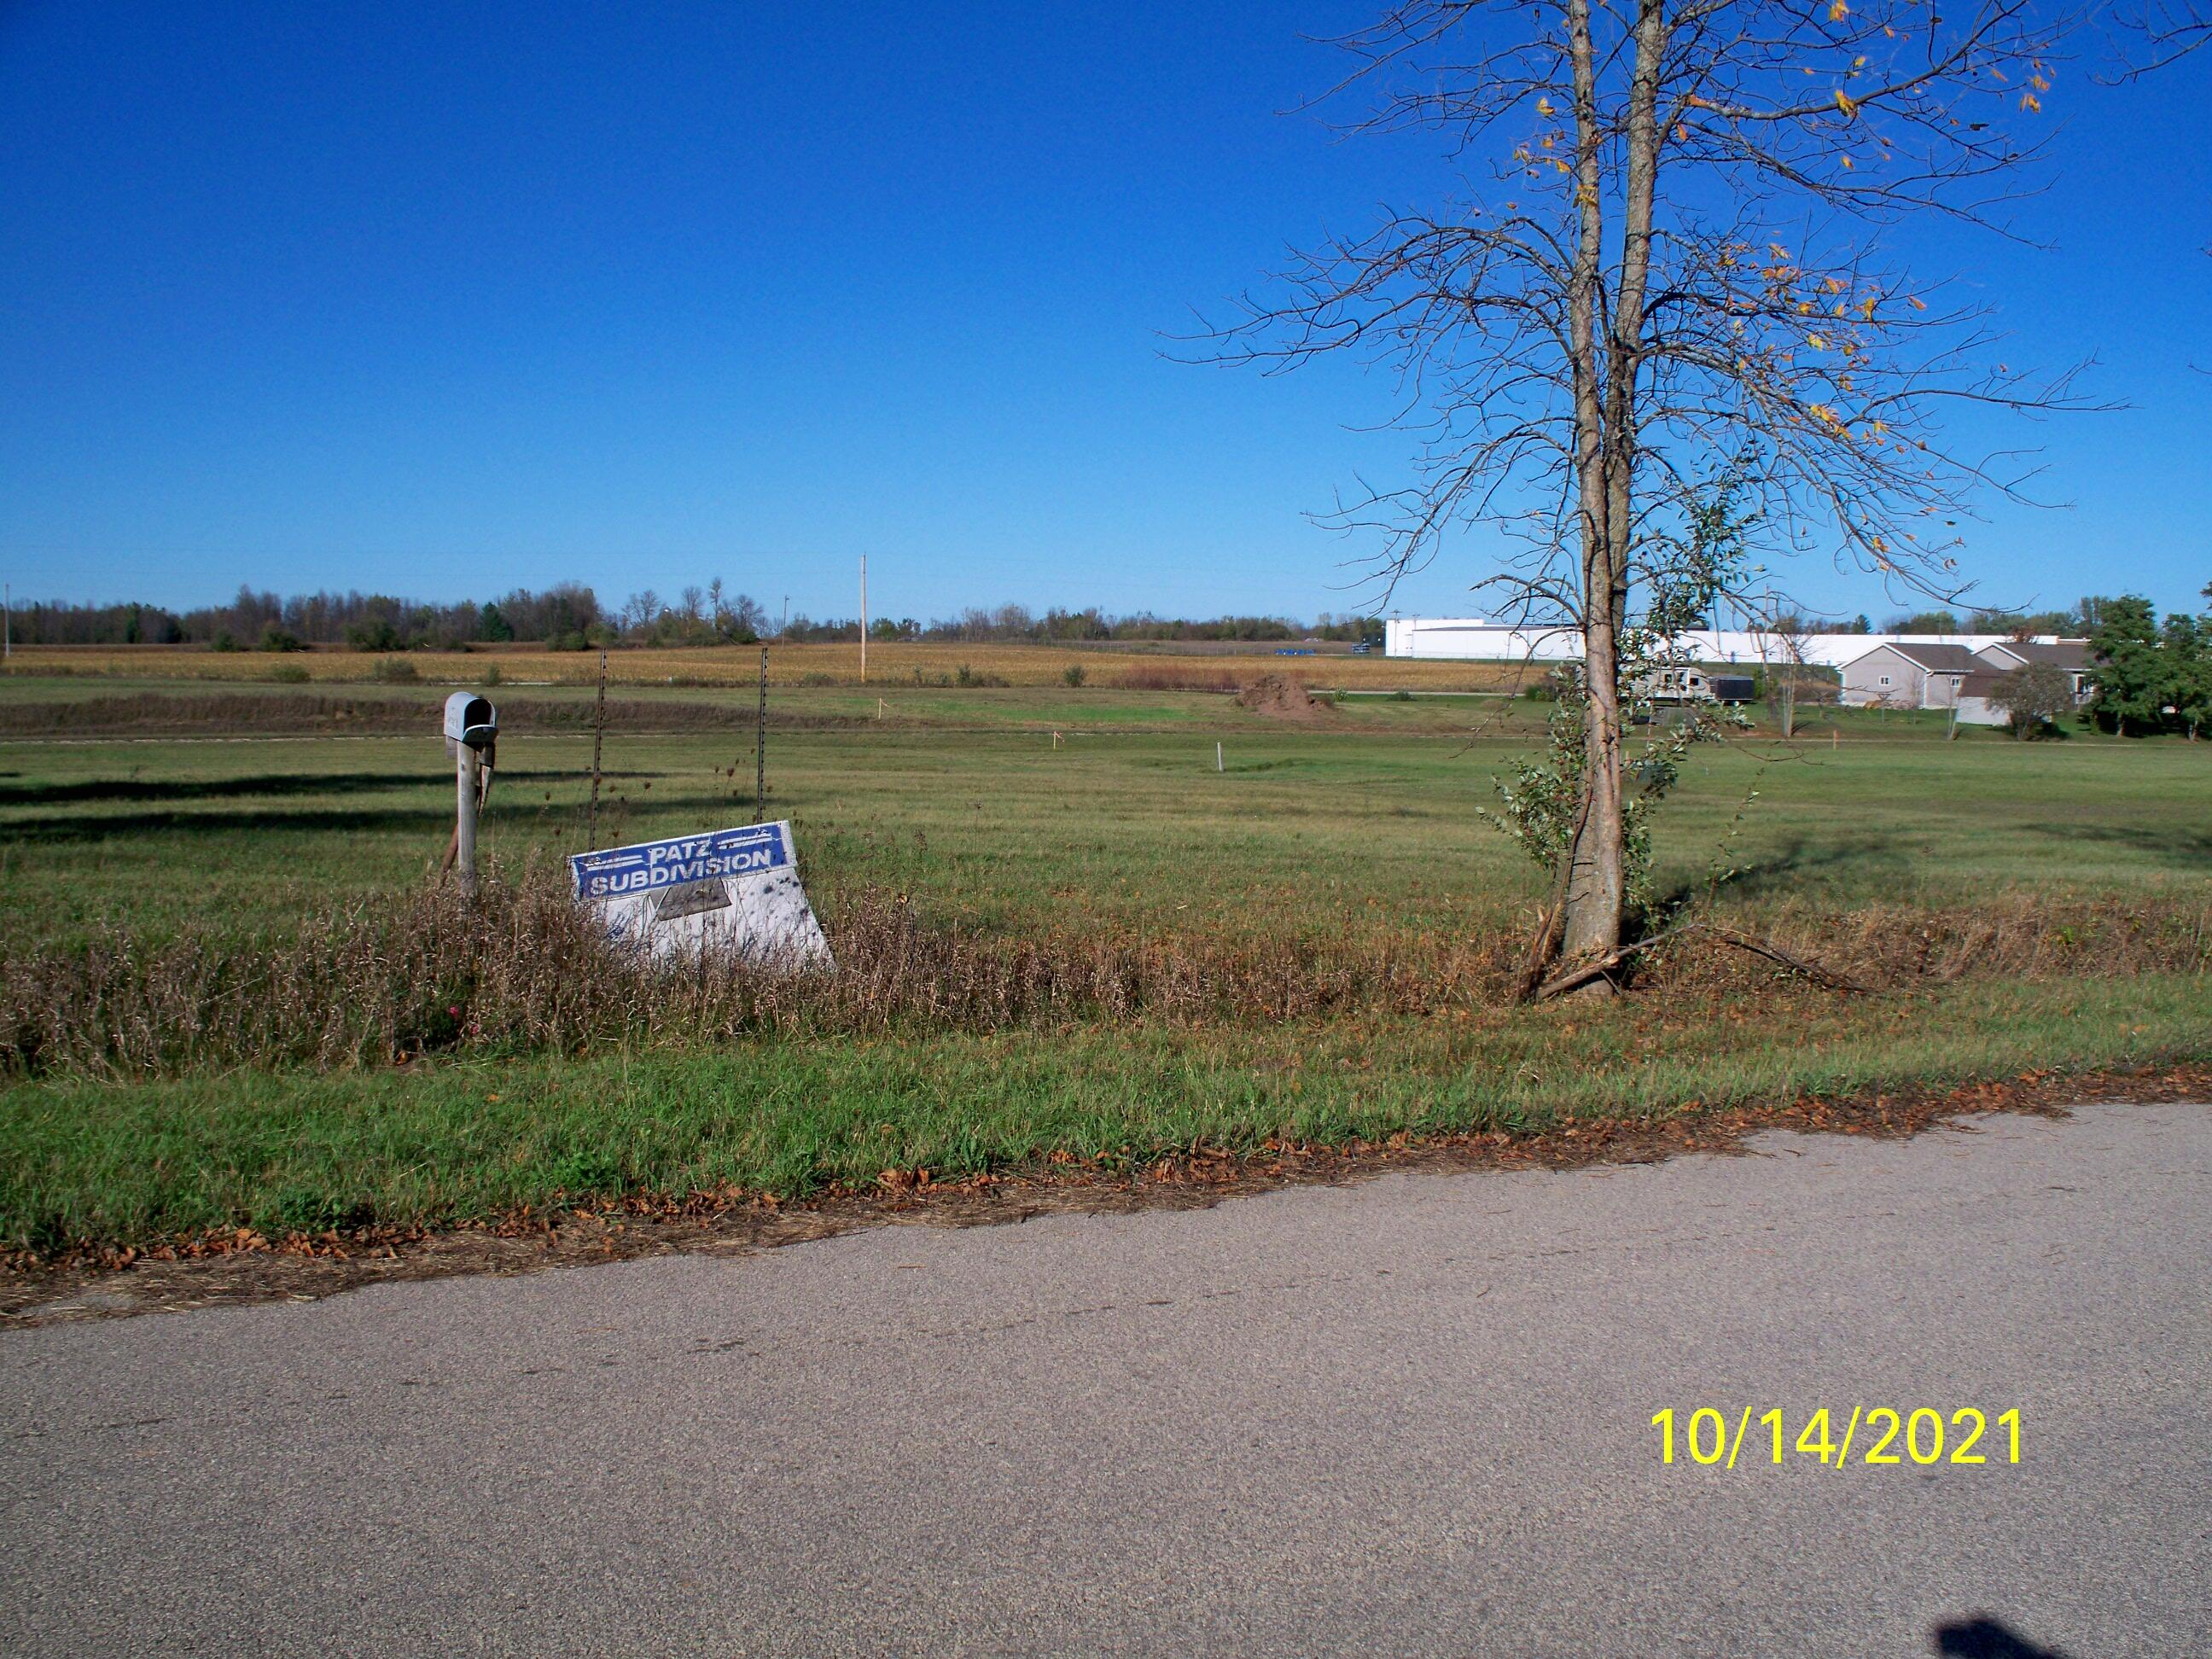 TBD River, Coleman, Wisconsin 54112, ,Vacant Land,For Sale,River,1767957